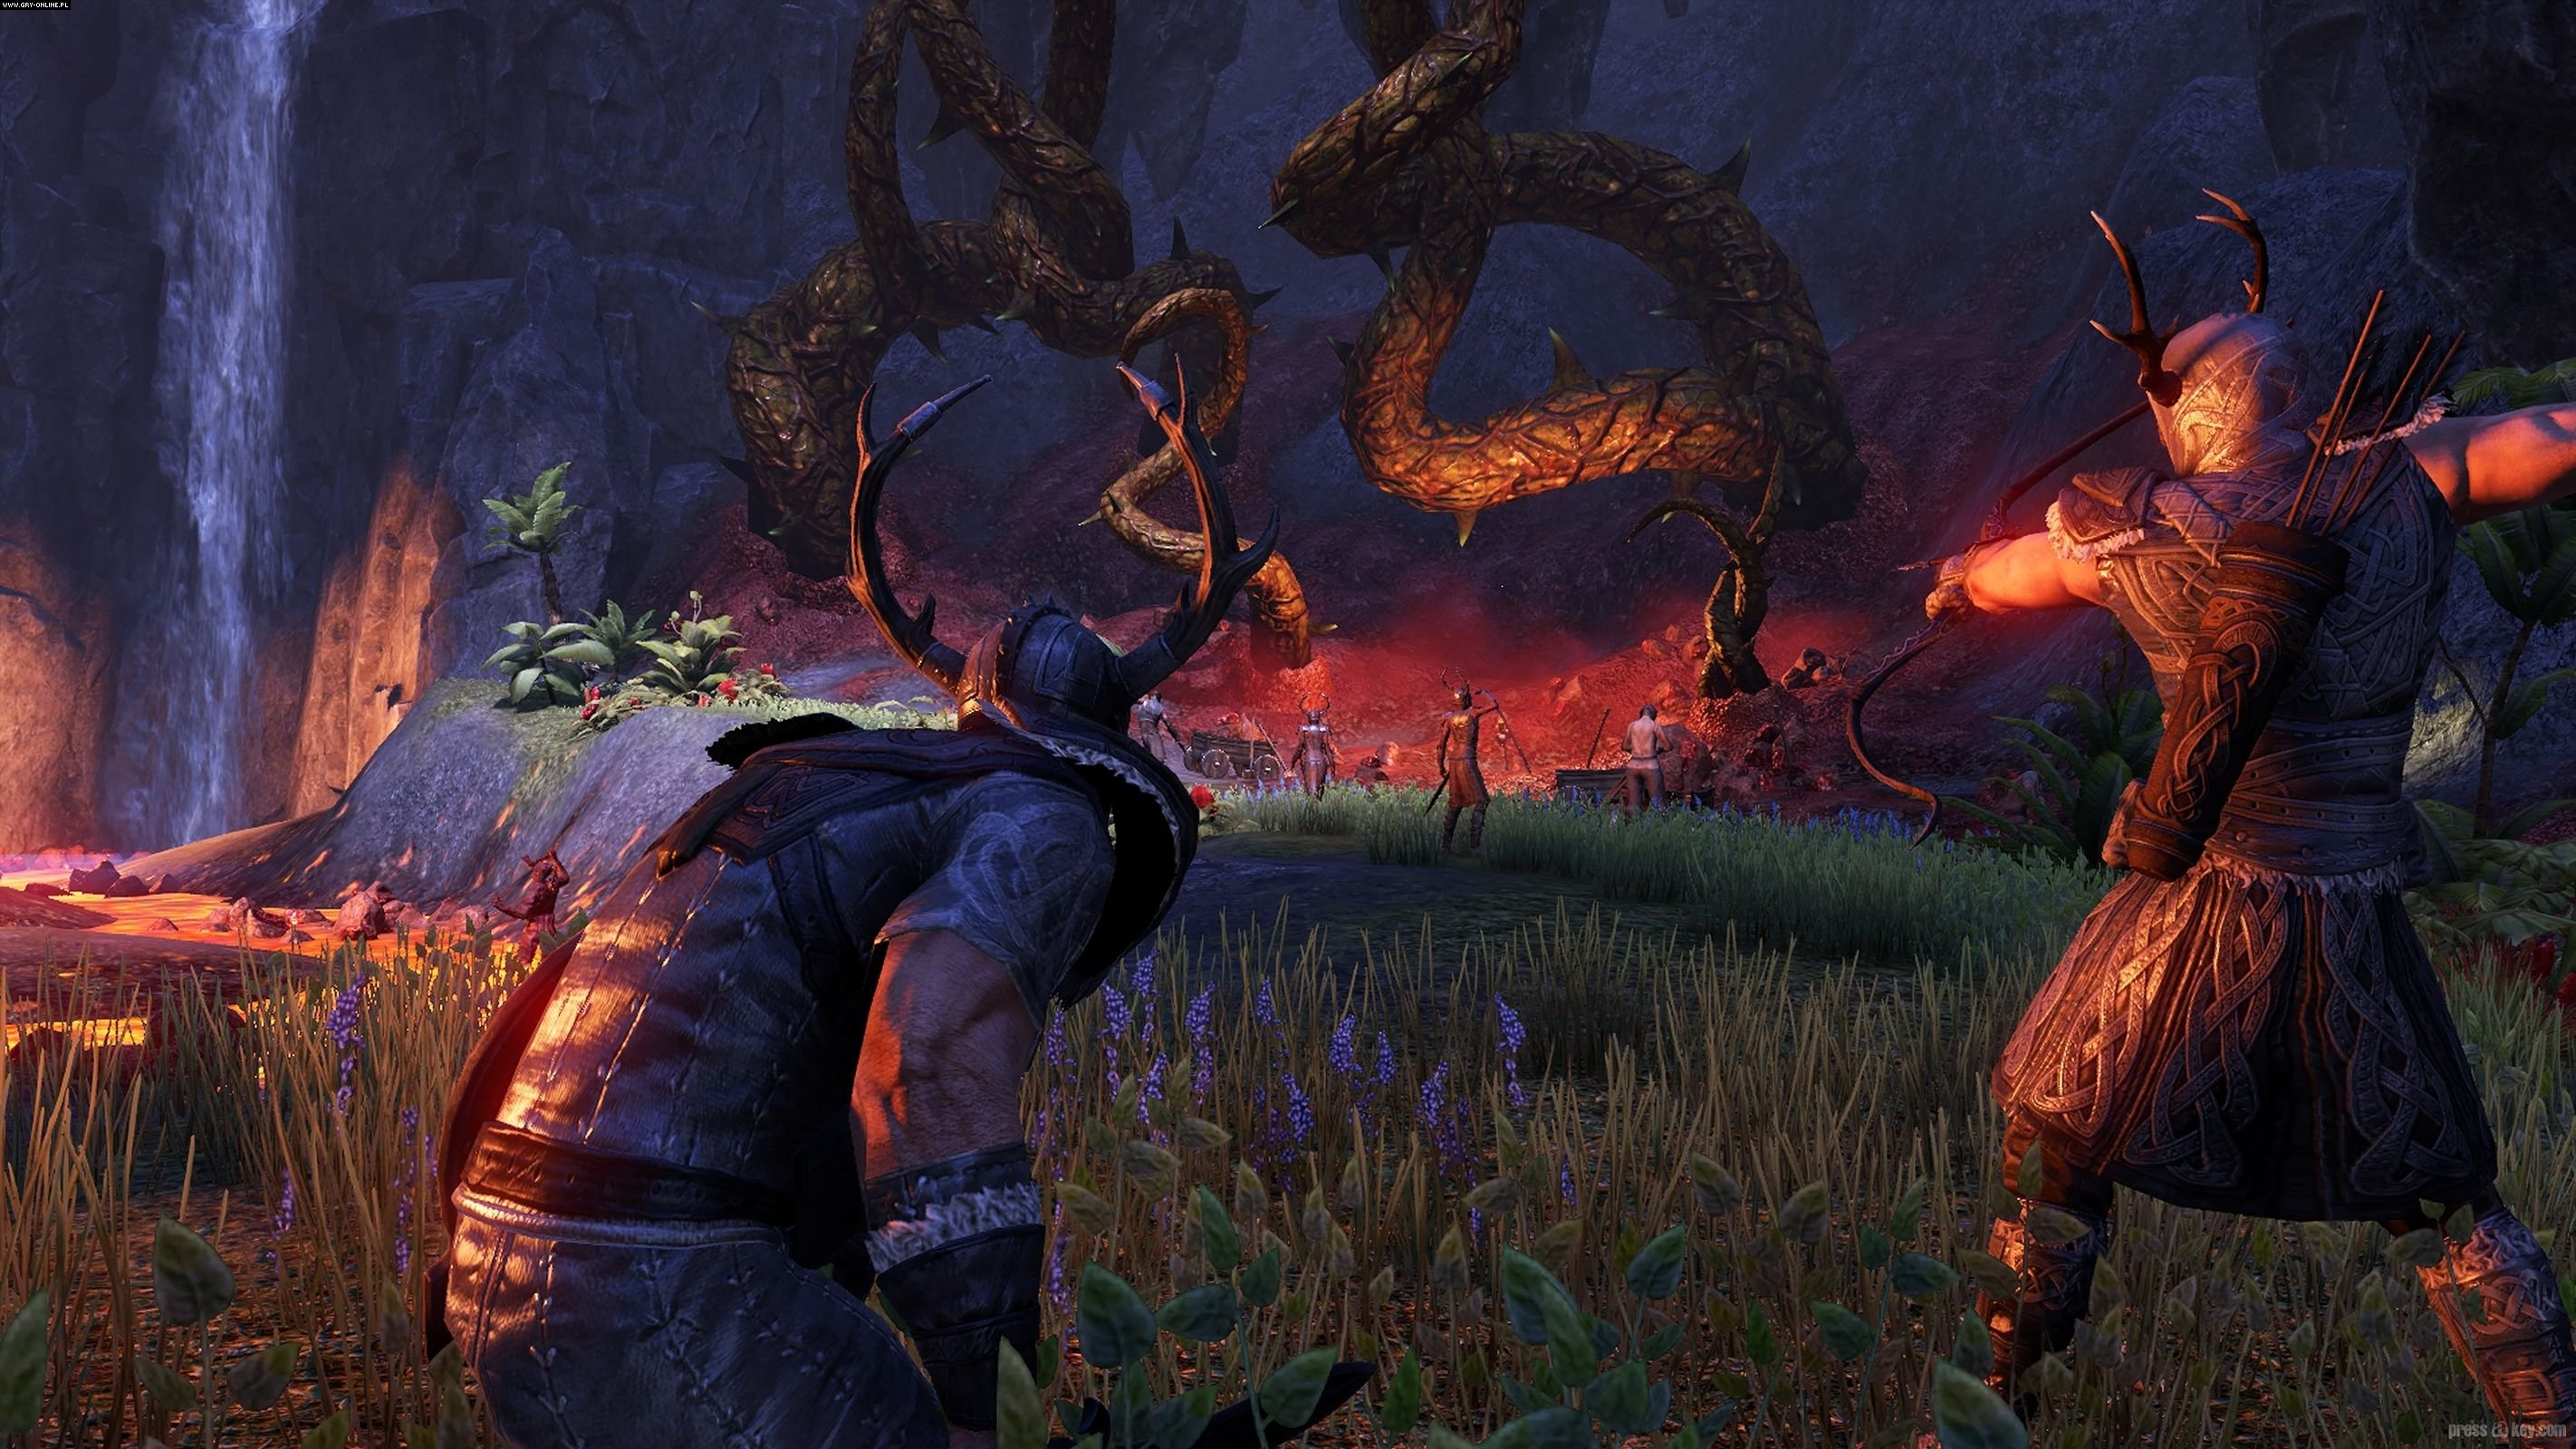 The Elder Scrolls Online: Morrowind - Horns of the Reach torrent